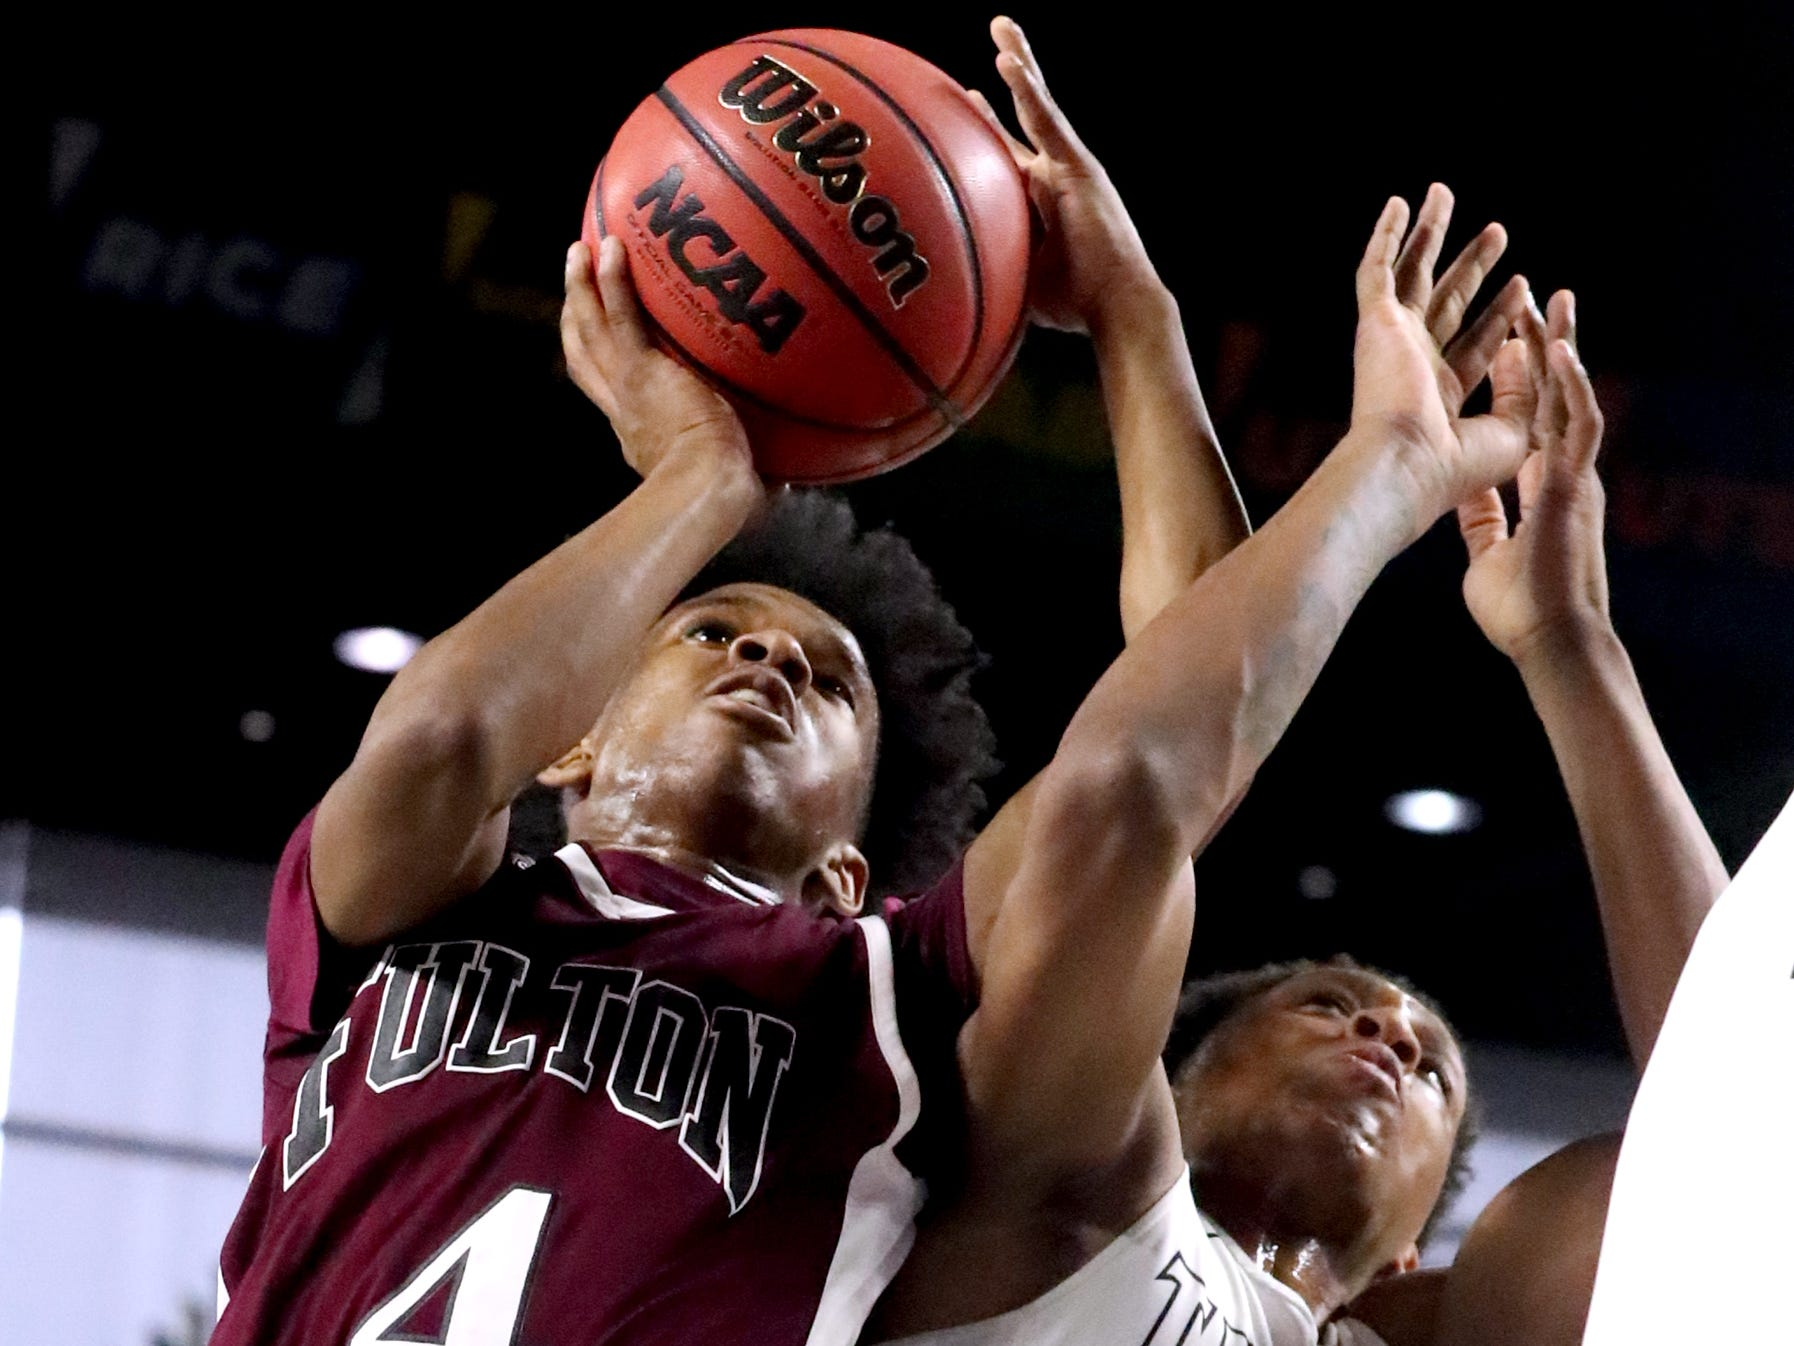 Fulton's Edward Lacy (4) shoots the ball as Mitchell's Jamarious Horton (2) guards him during the quarterfinal round of the TSSAA Class AA Boys State Tournament, on Wednesday, March 13, 2019, at Murphy Center in Murfreesboro, Tenn.